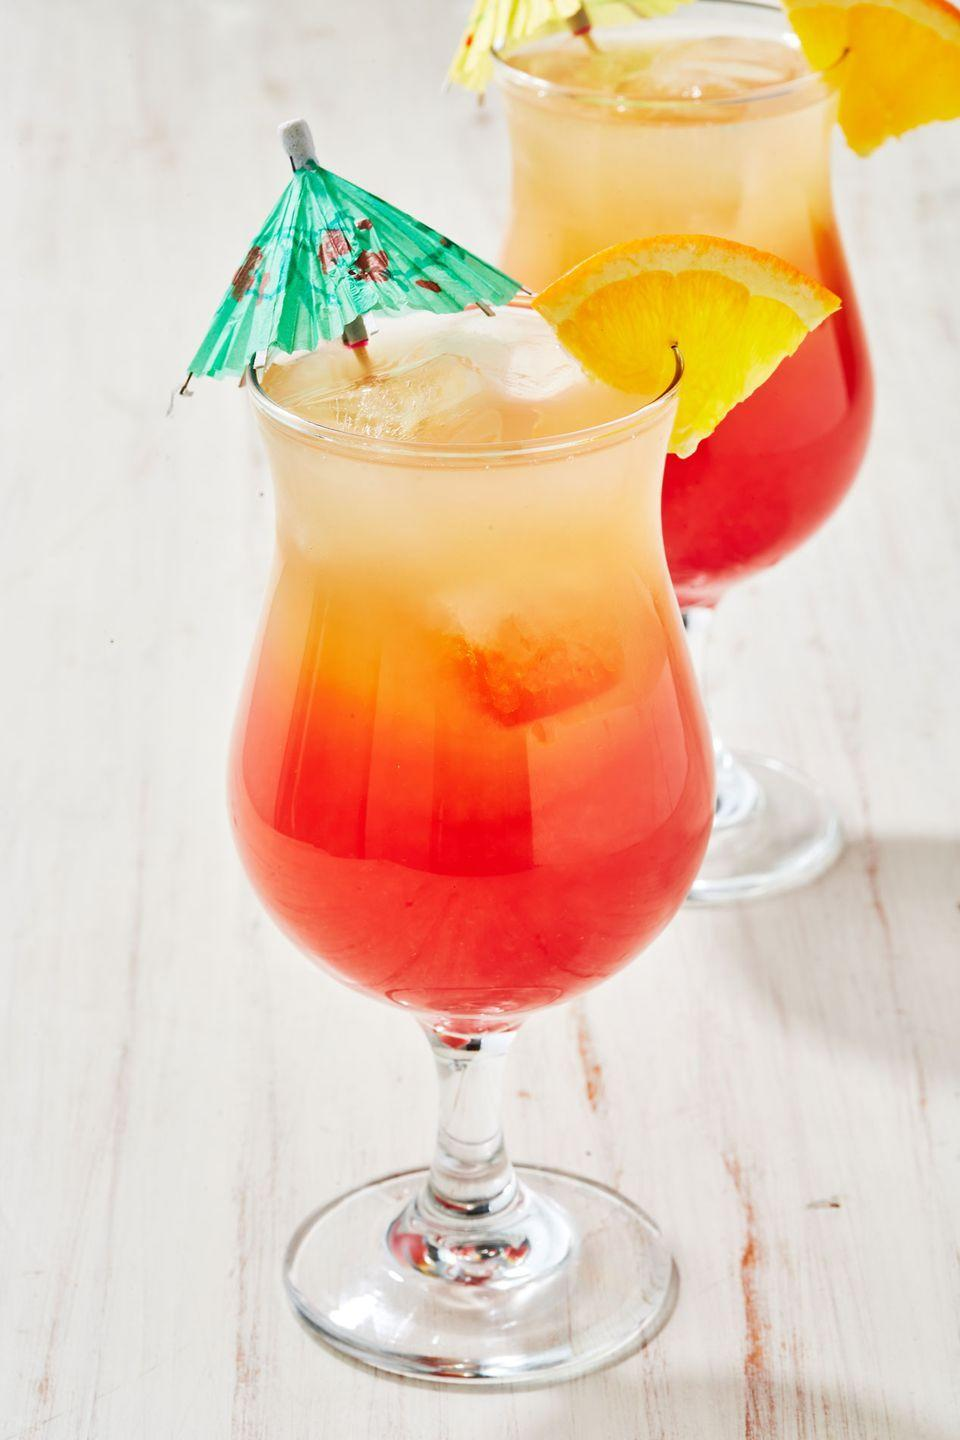 """<p>Enough said.</p><p>Get the recipe from <a href=""""https://www.delish.com/cooking/recipe-ideas/a30275456/sex-on-the-beach-cocktail-recipe/"""" rel=""""nofollow noopener"""" target=""""_blank"""" data-ylk=""""slk:Delish"""" class=""""link rapid-noclick-resp"""">Delish</a>. </p>"""